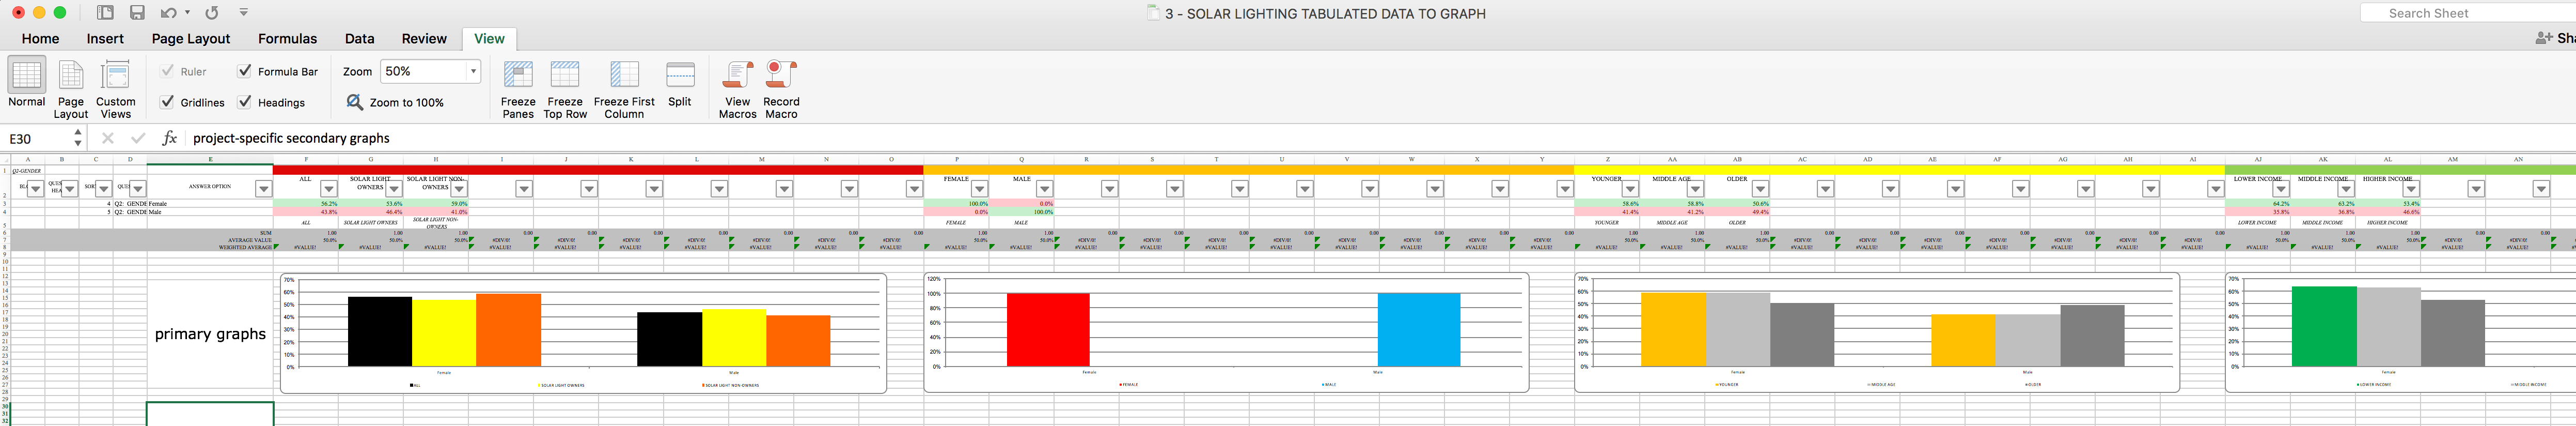 How To Automate Moving Excel Content And Graphs Into